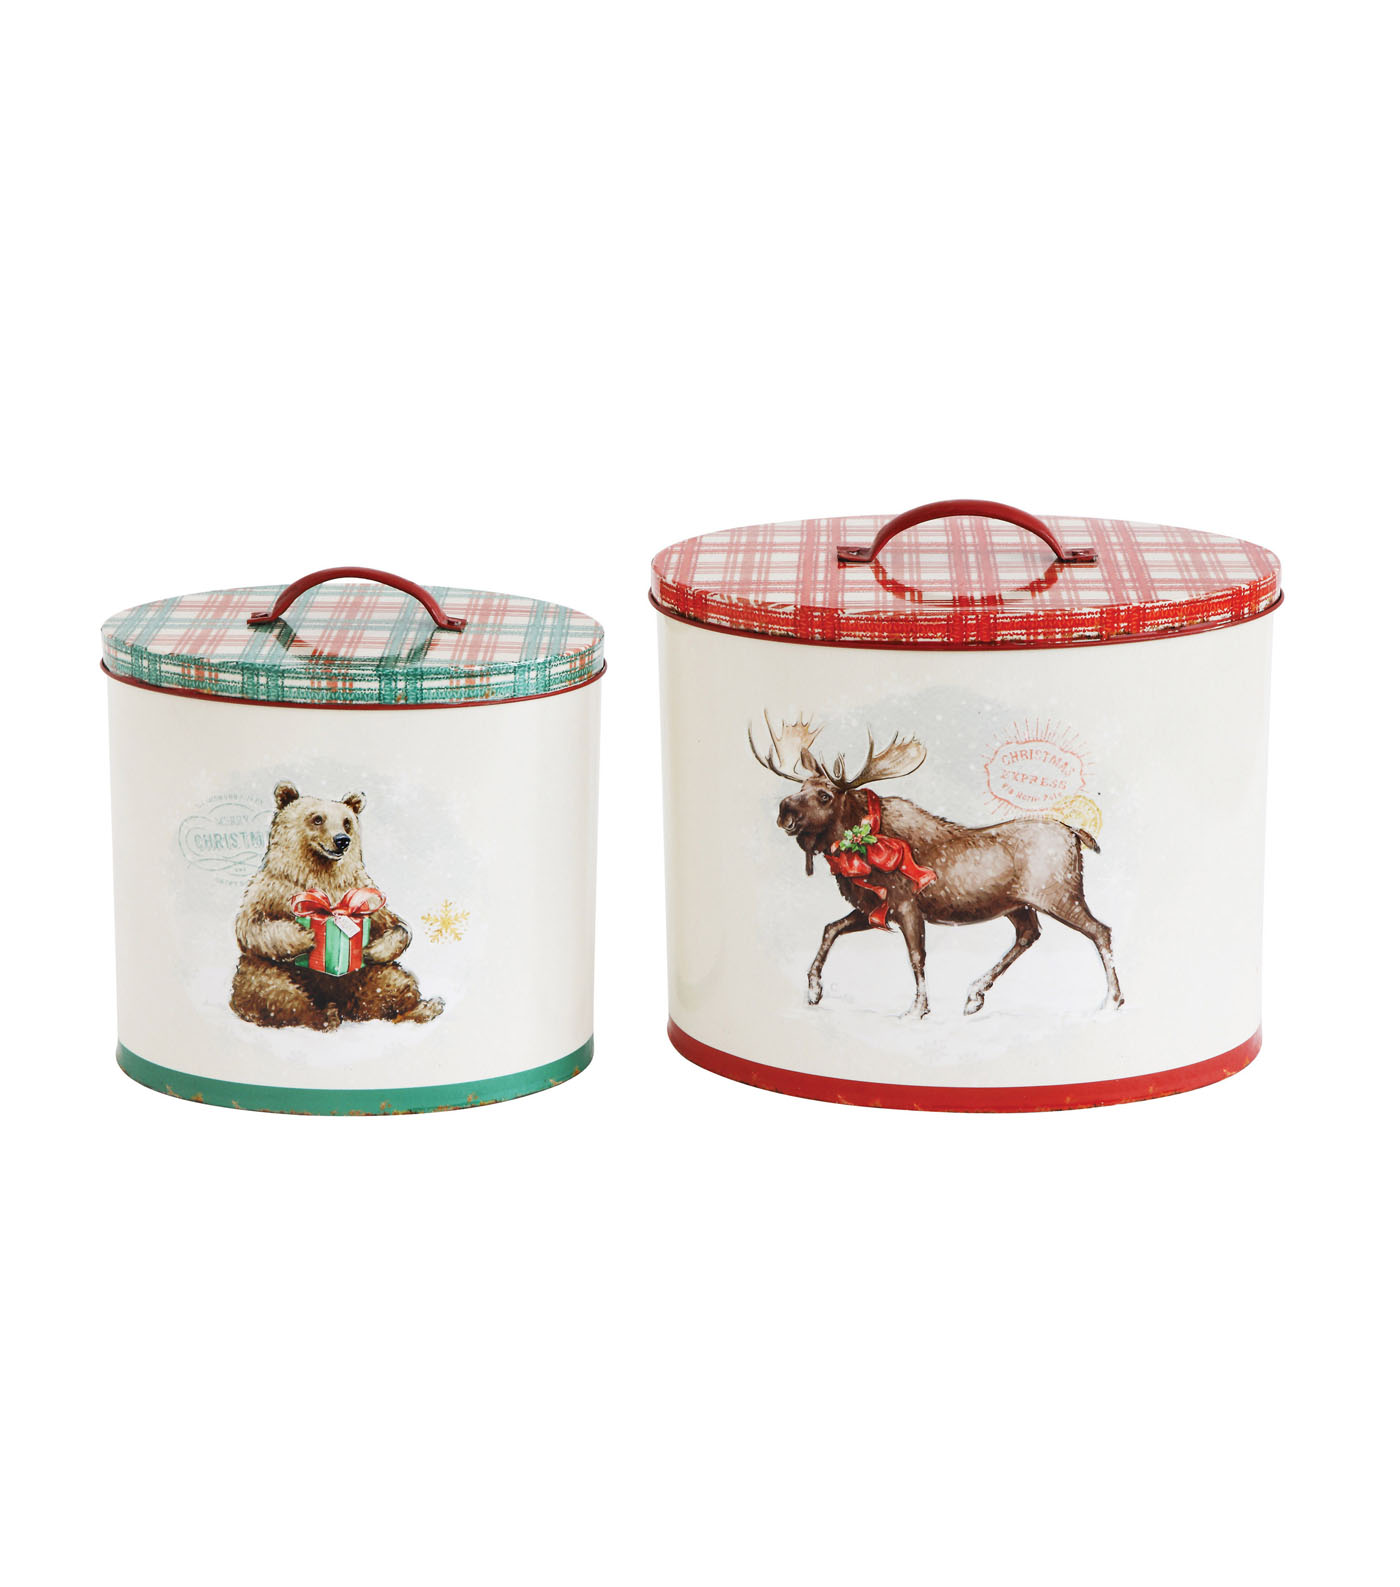 3R Studios Christmas 2 pk Decorative Tin Containers with Animal Images